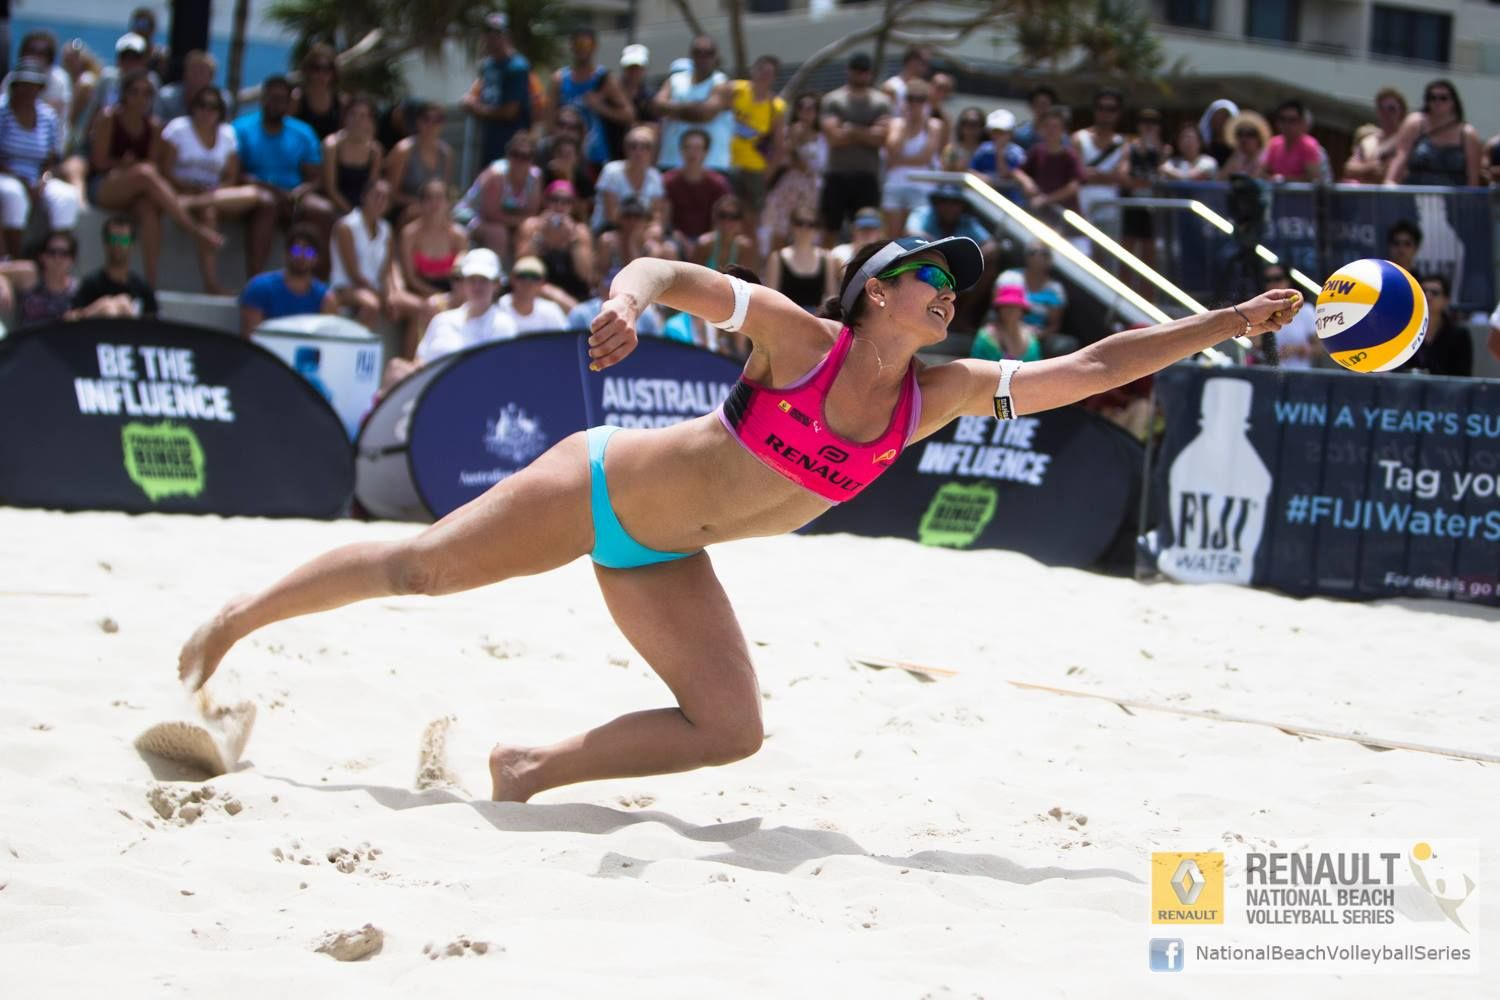 Becchara Palmer Part Of The Kingdom S Pro Beach Volleyball Team Team Palmerstone Flying Through The Air Gold Co Beach Volleyball Volleyball Volleyball Team